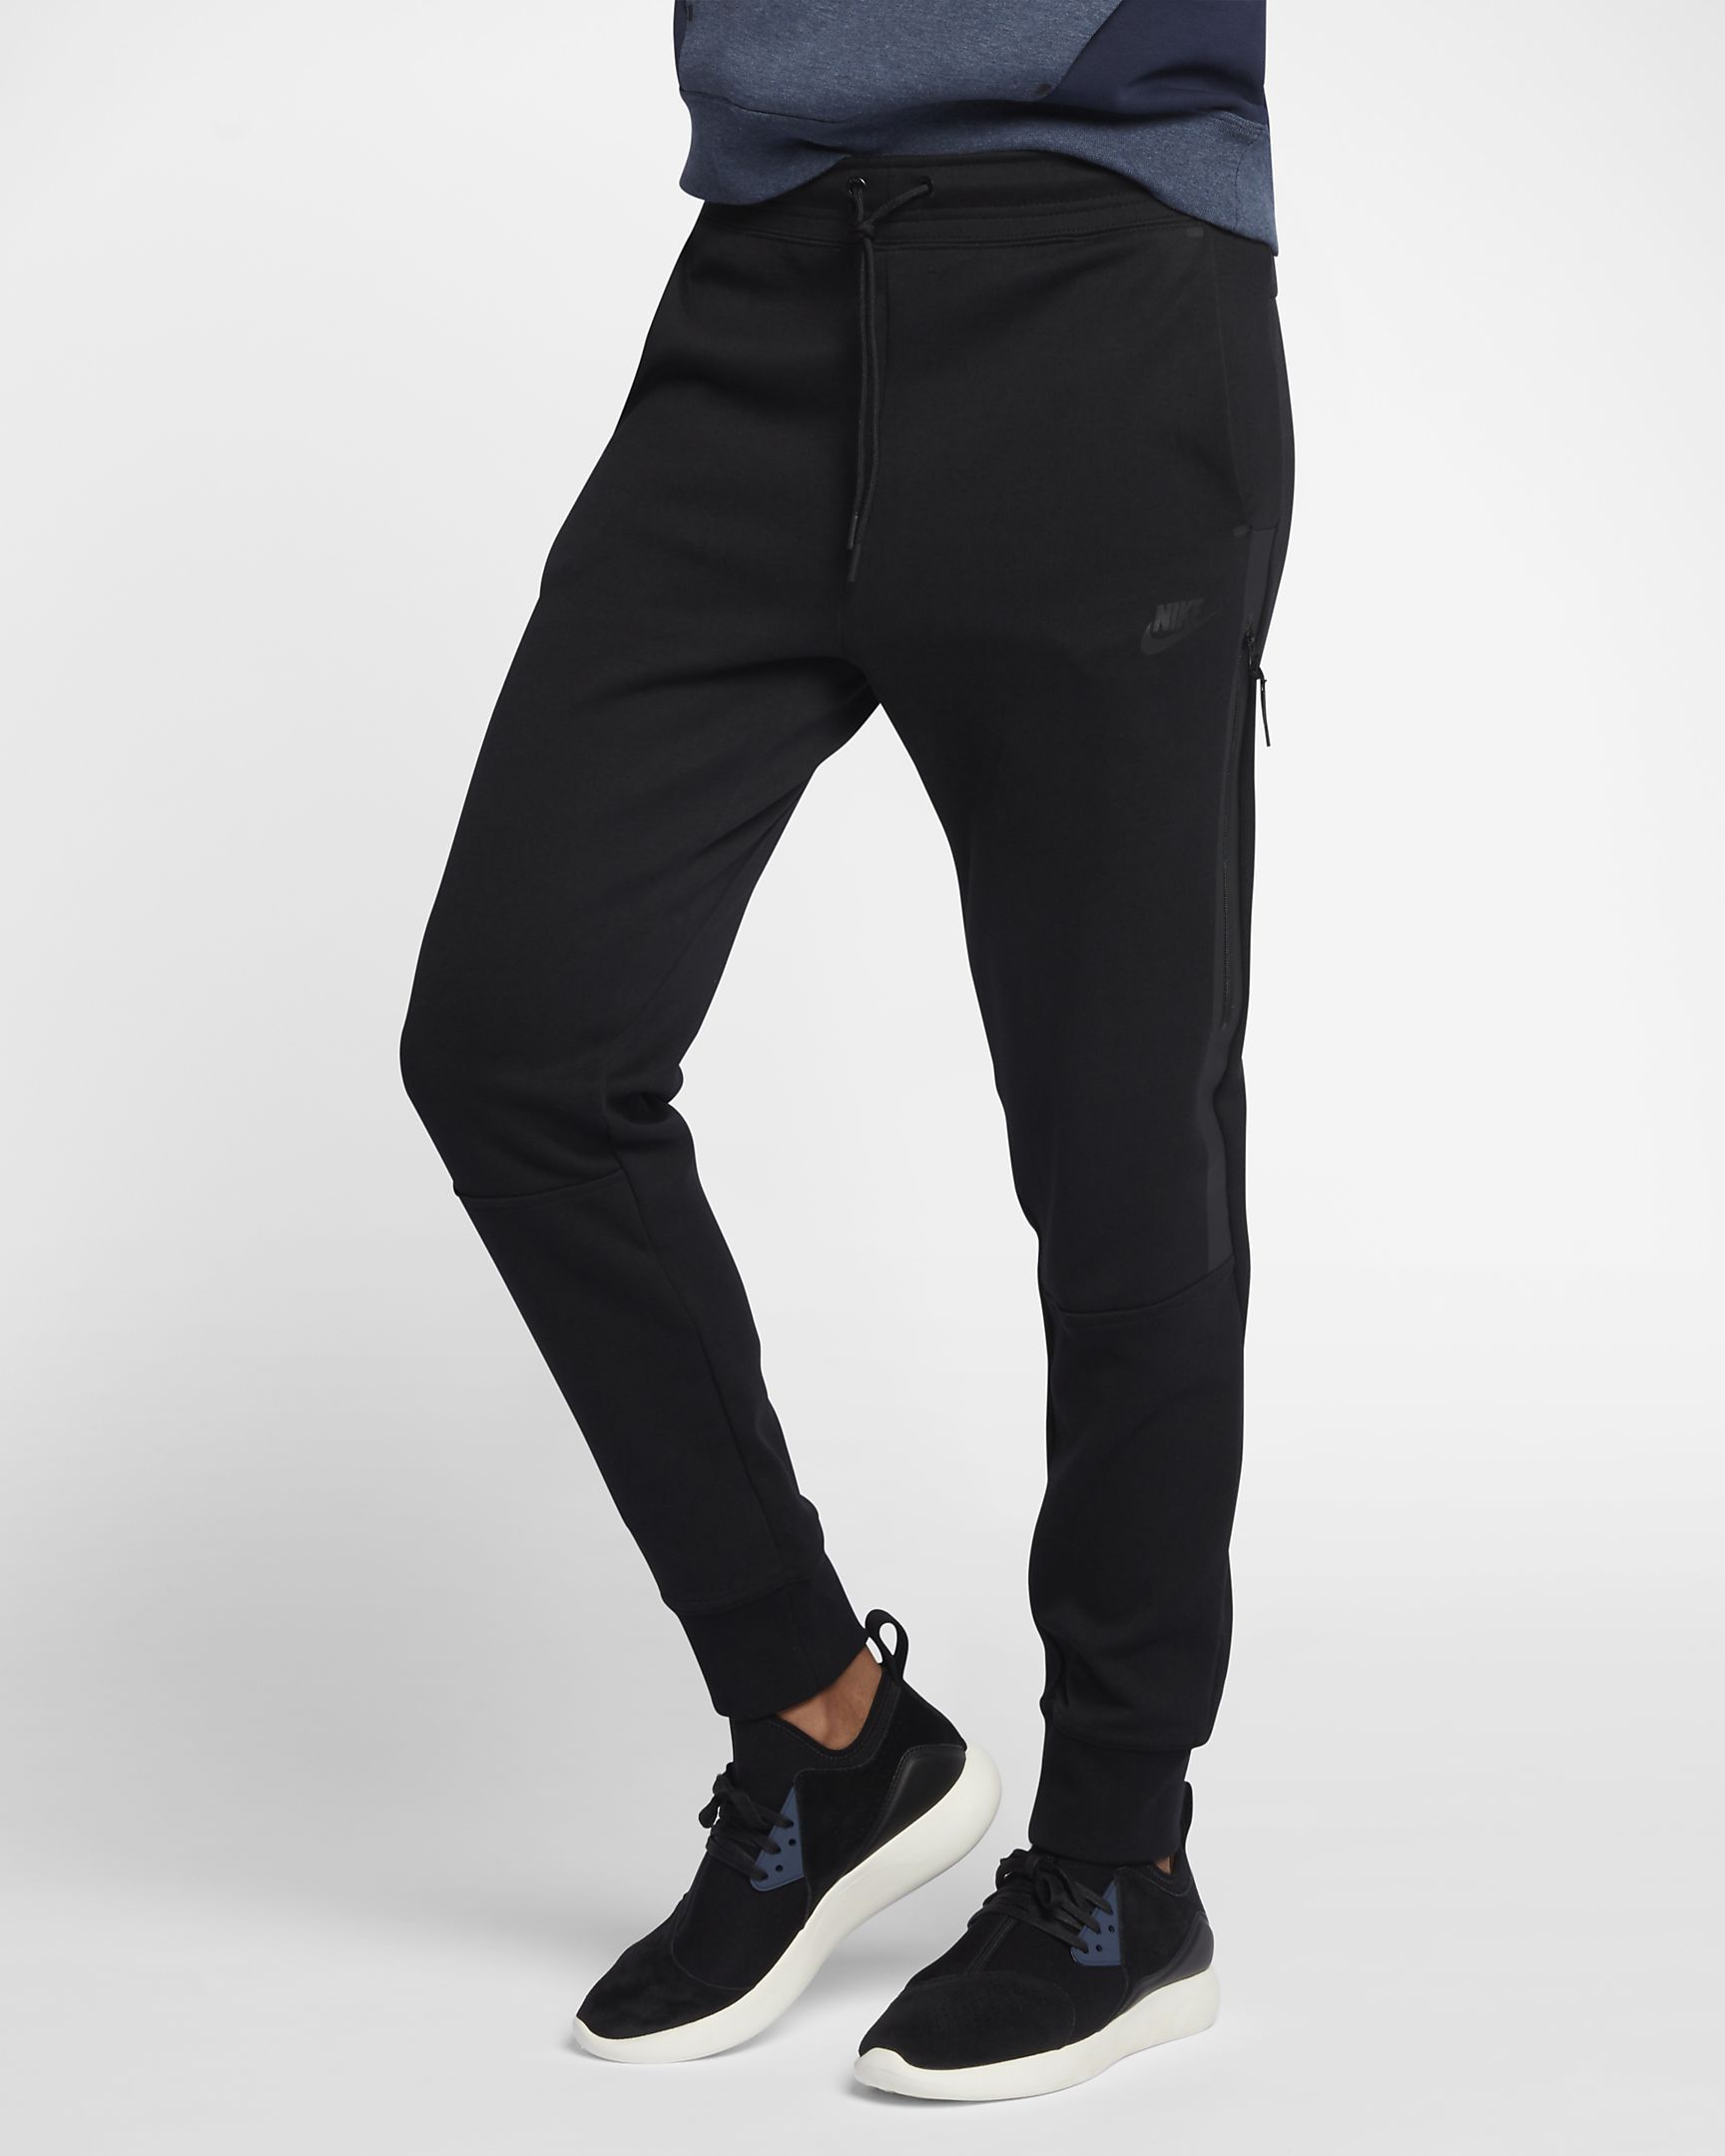 Nike Sportswear Tech Fleece Women's Pants (With images